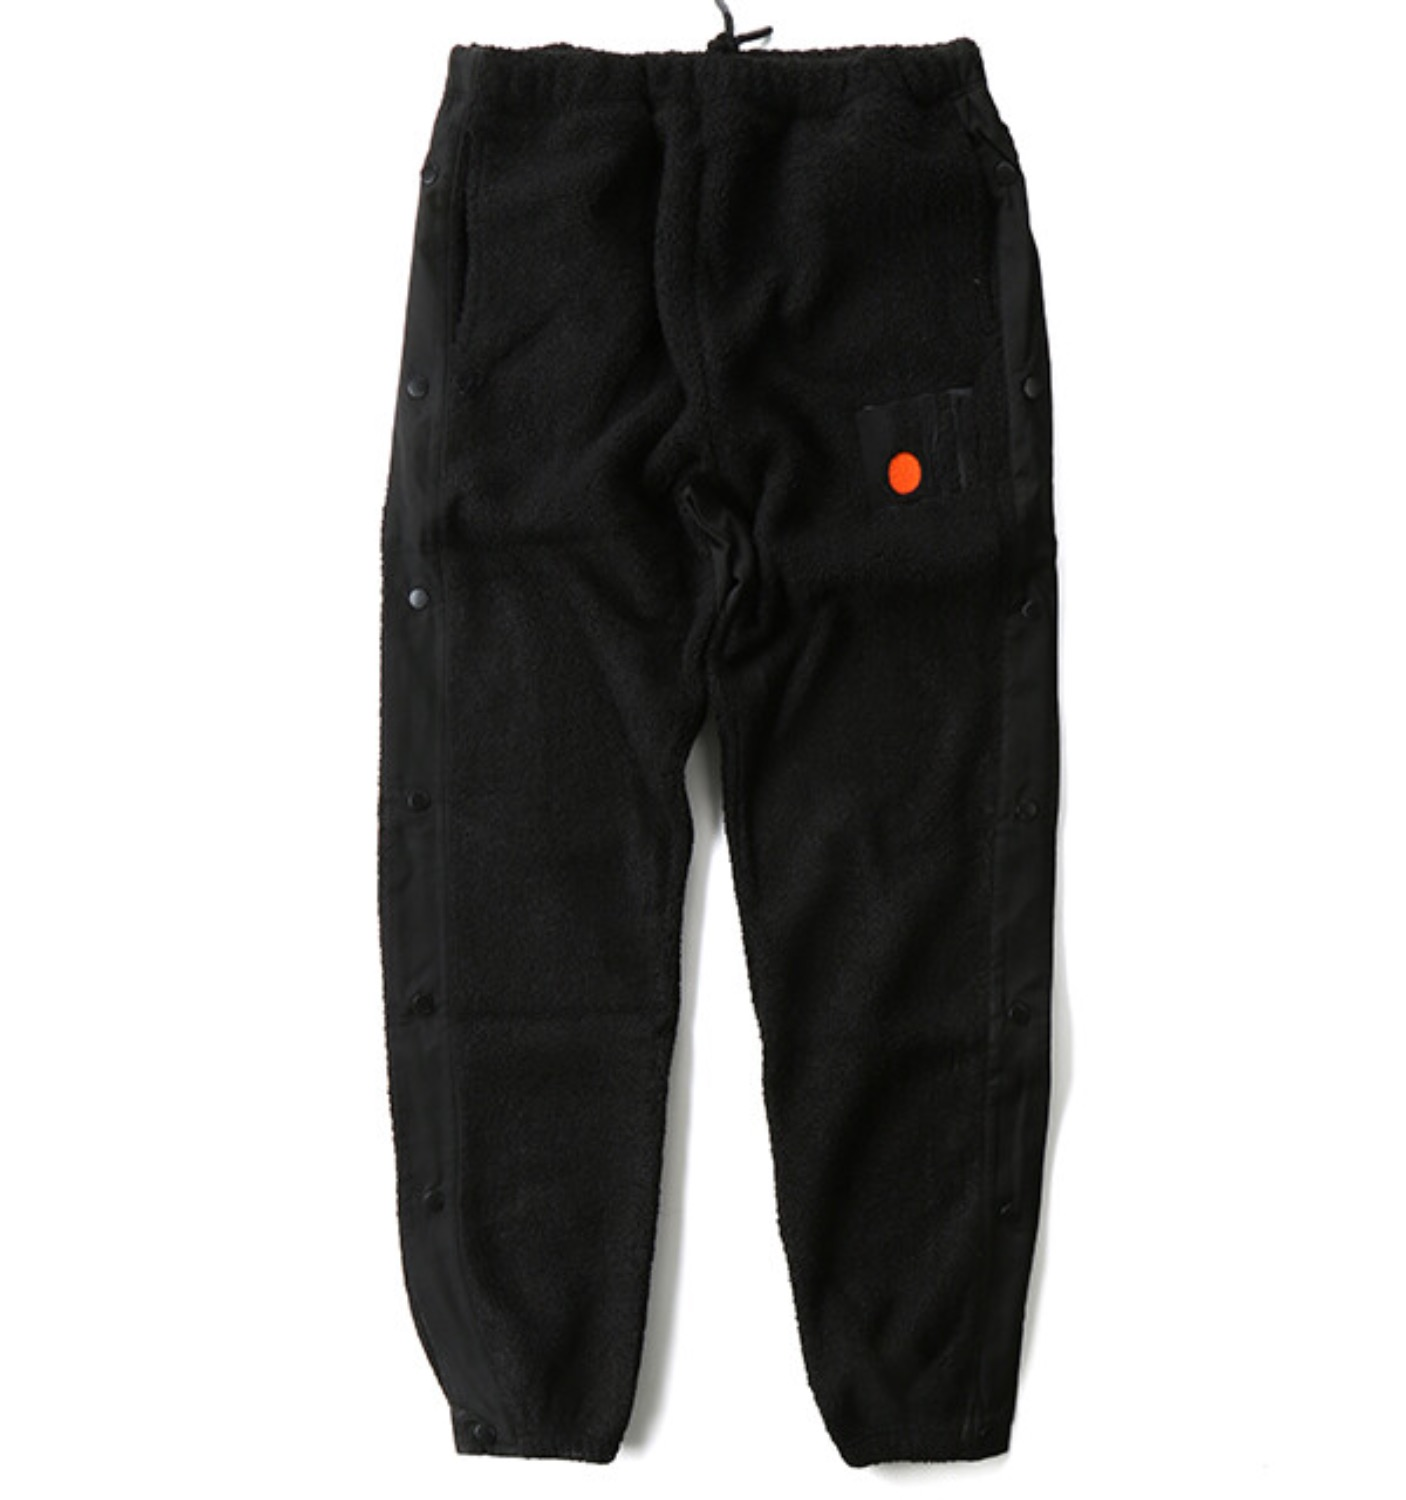 THE DESMOND PANT BLACK(381-8101)